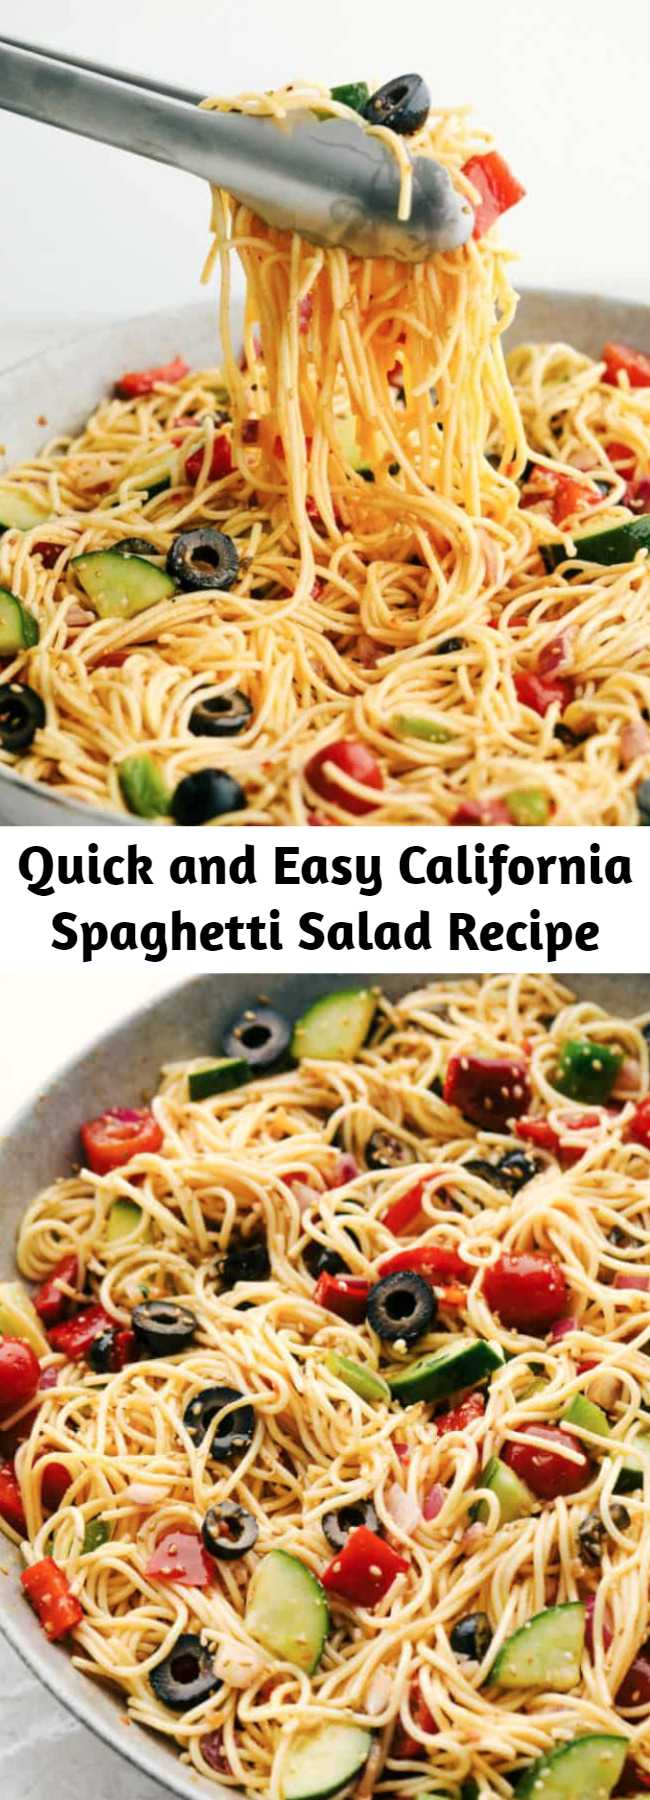 Quick and Easy California Spaghetti Salad Recipe - A delicious spaghetti salad filled with fresh summer veggies and olives. Topped with a zesty italian dressing and parmesan cheese, this will be the hit of your next gathering!